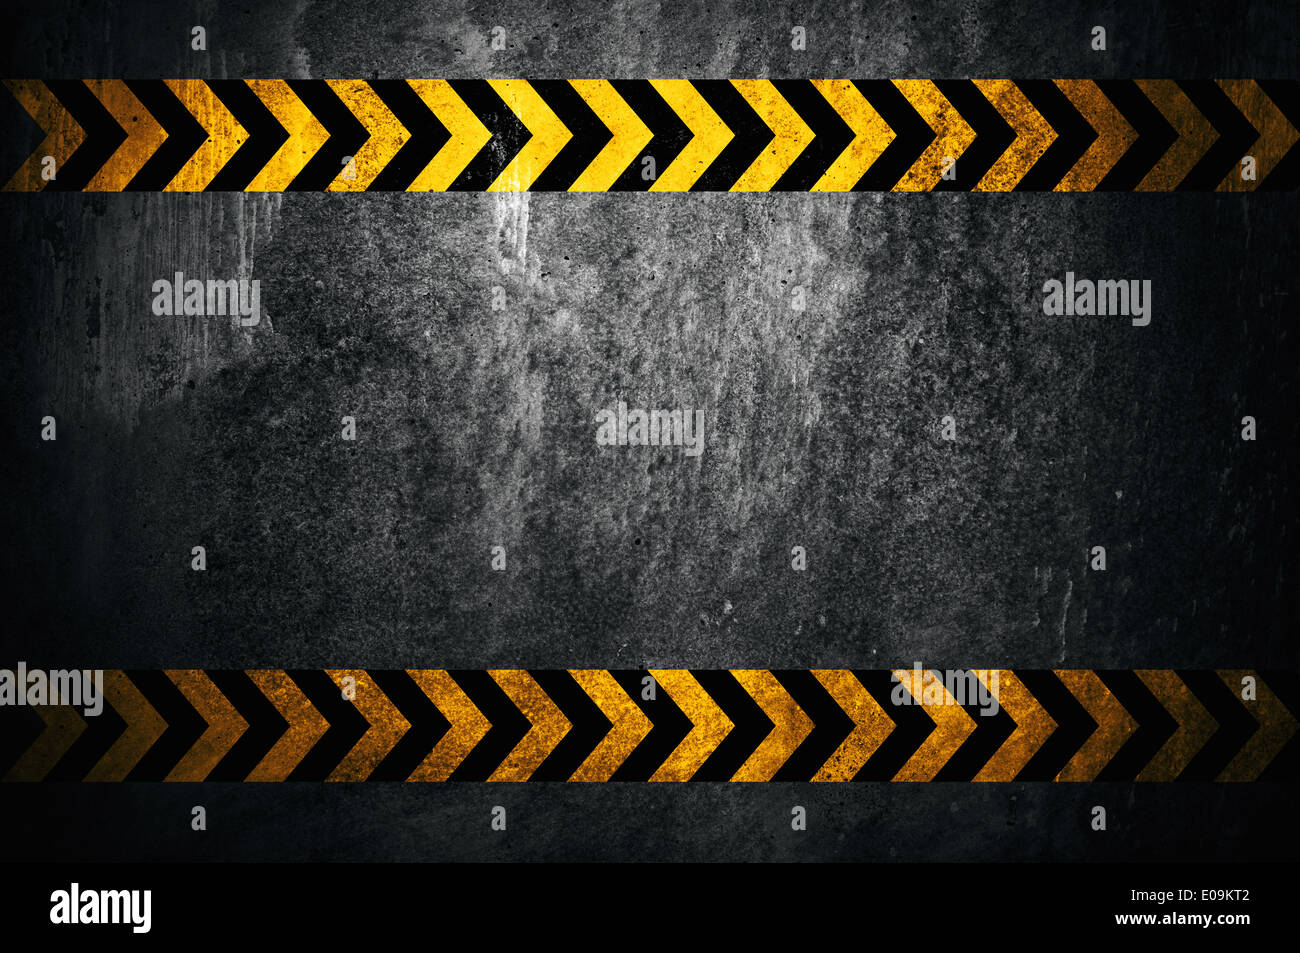 Asphalt background with black and yellow markings - Stock Image